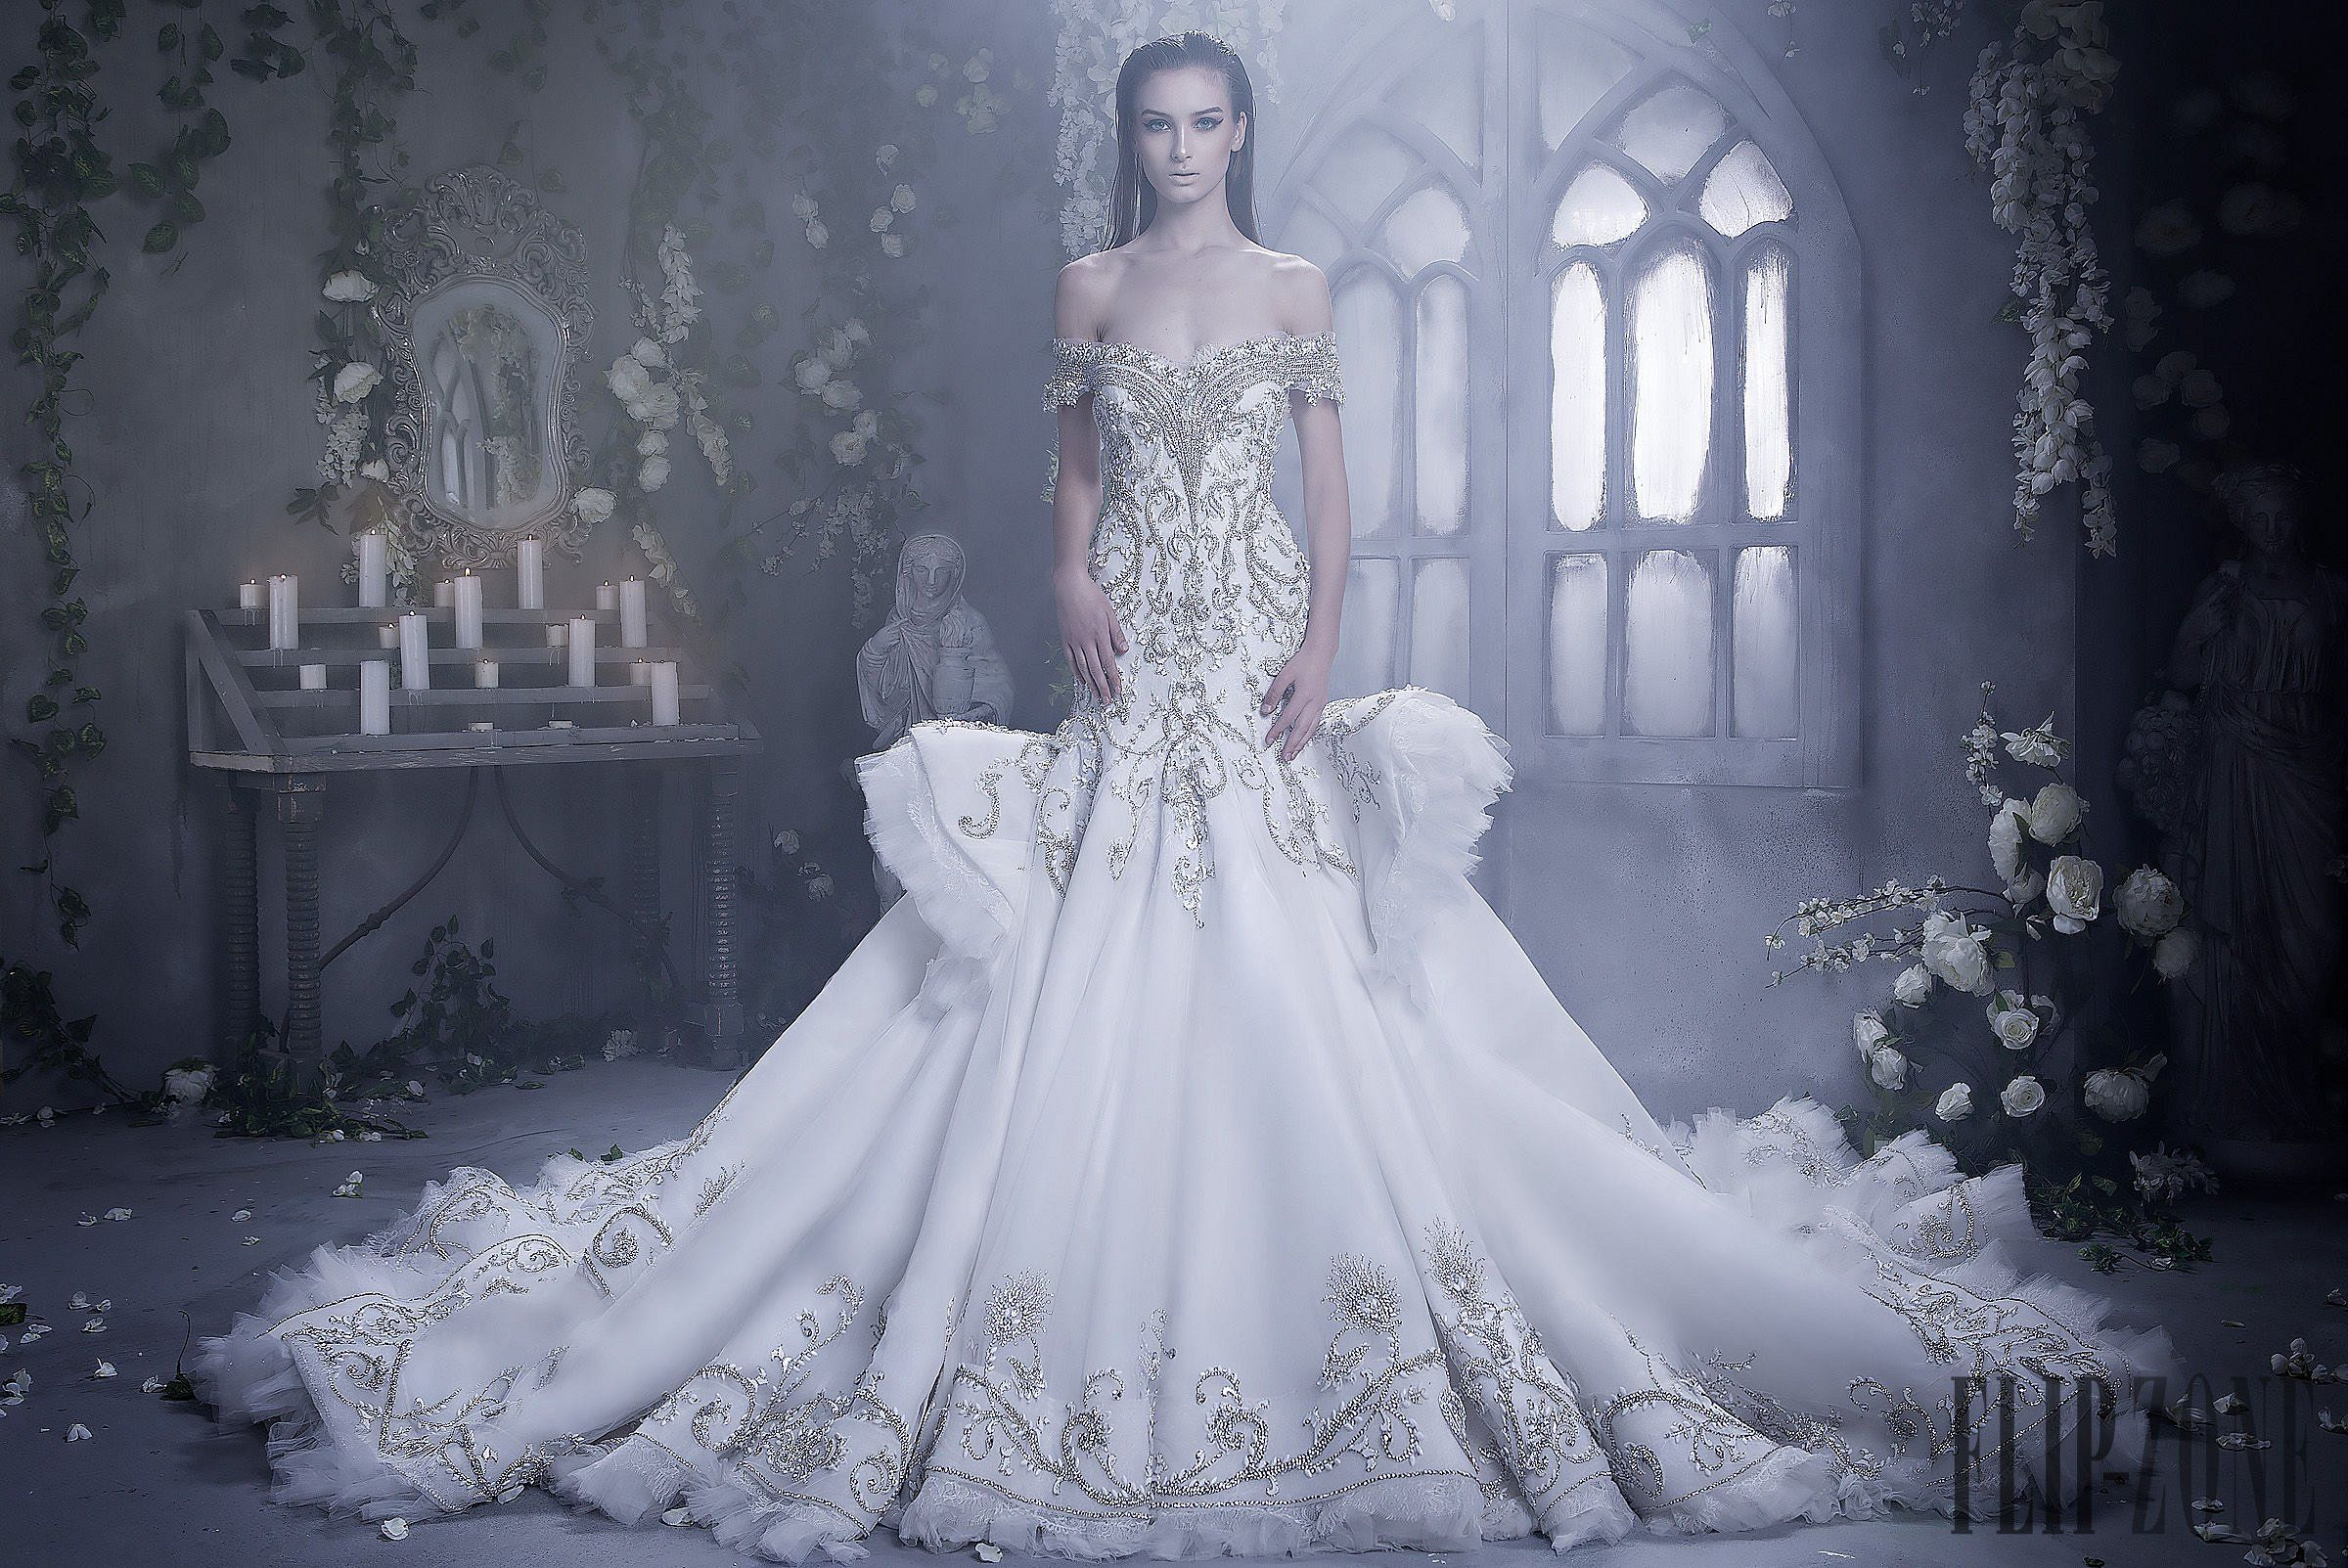 Dar sara fallwinter bridal collection wedding gowns